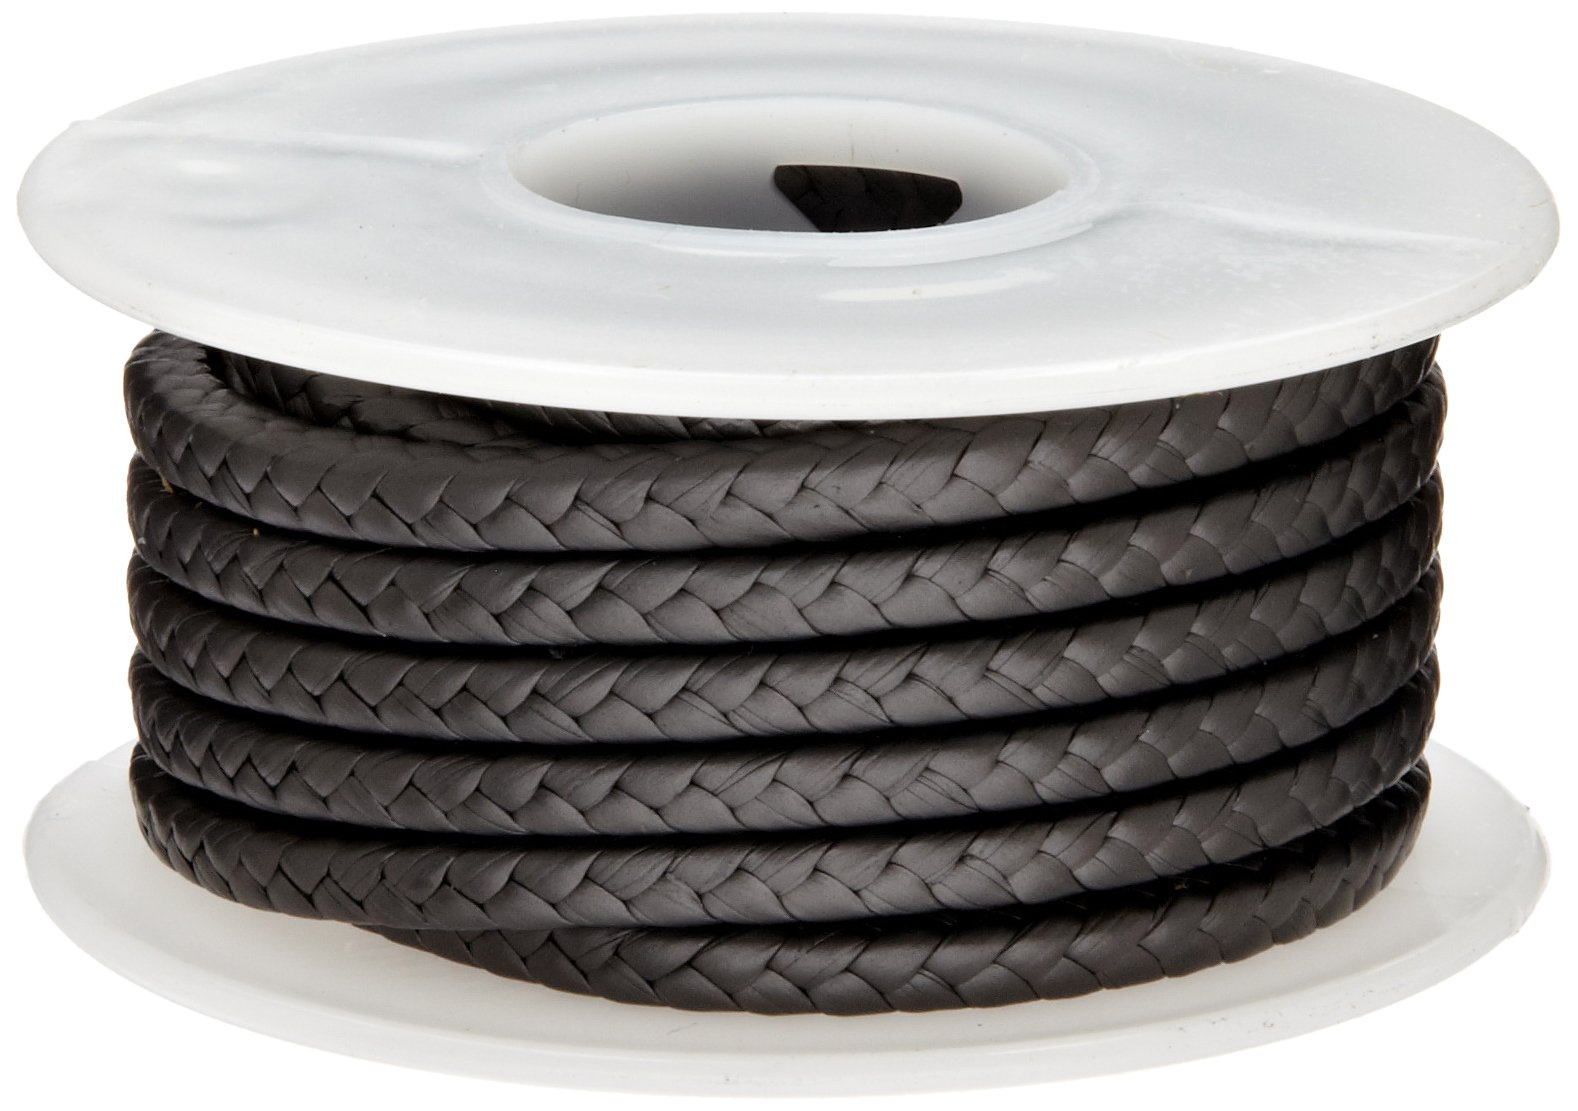 Palmetto 1382 Series Expanded PTFE with Graphite Compression Packing Seal, Dull Black, 1/4'' Square, 5' Length